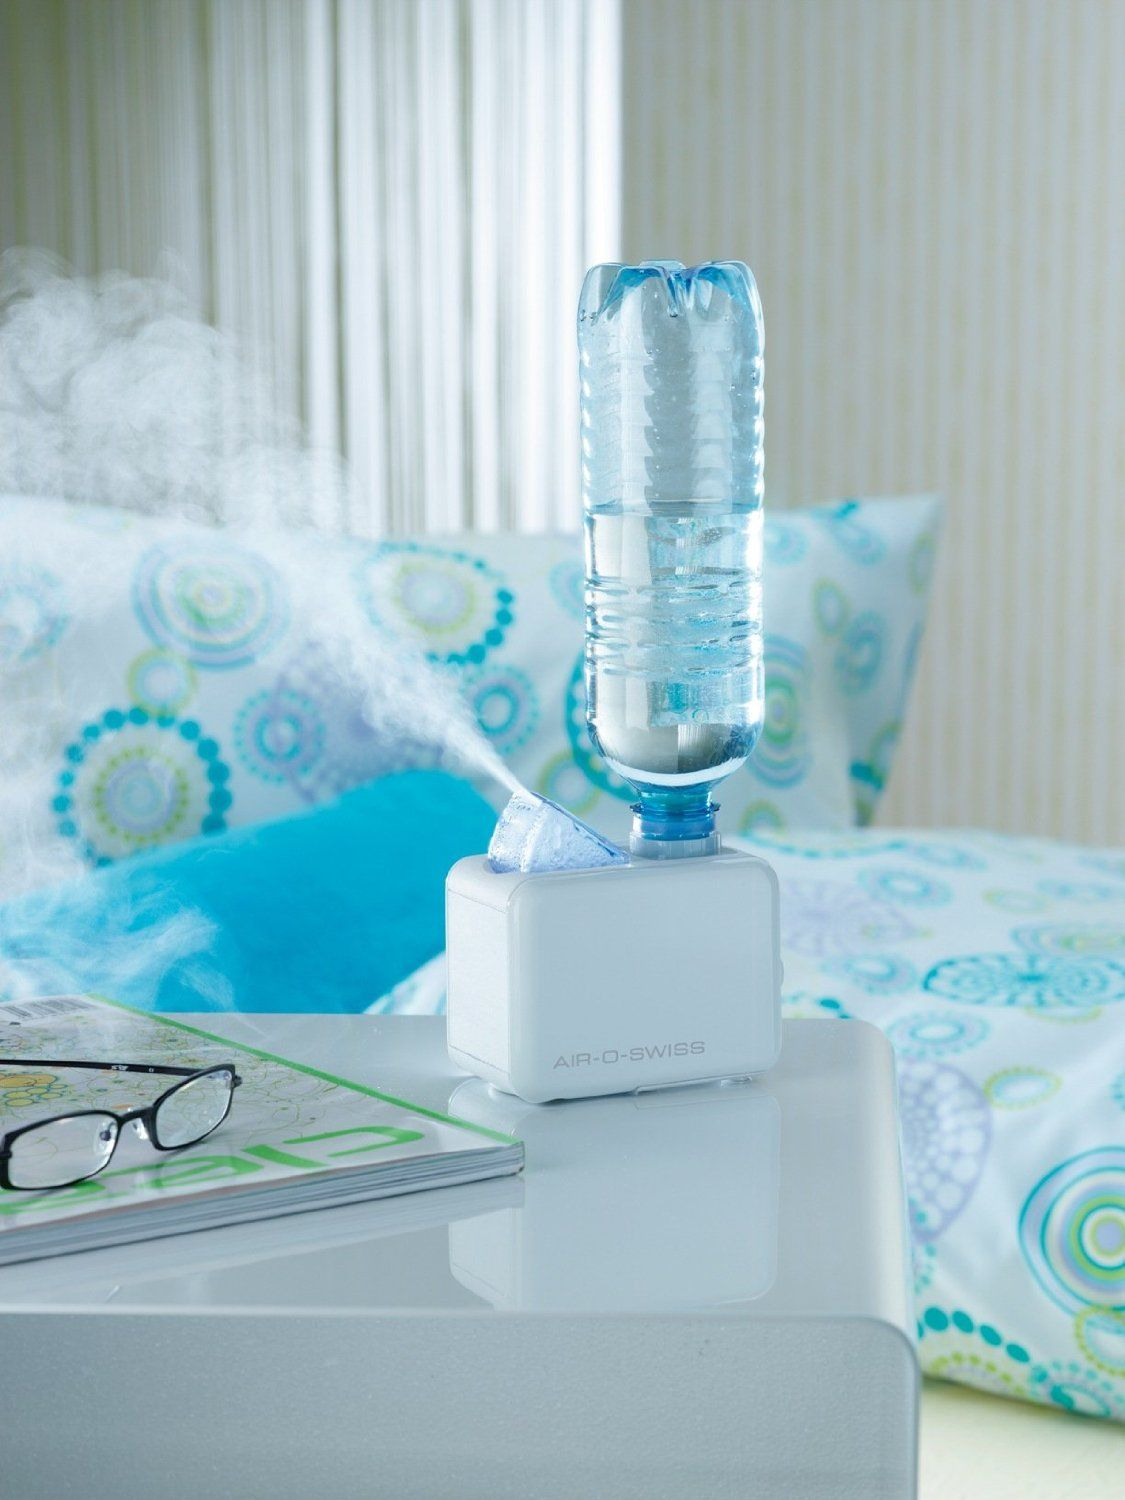 Cool little travel humidifier that uses a regular water